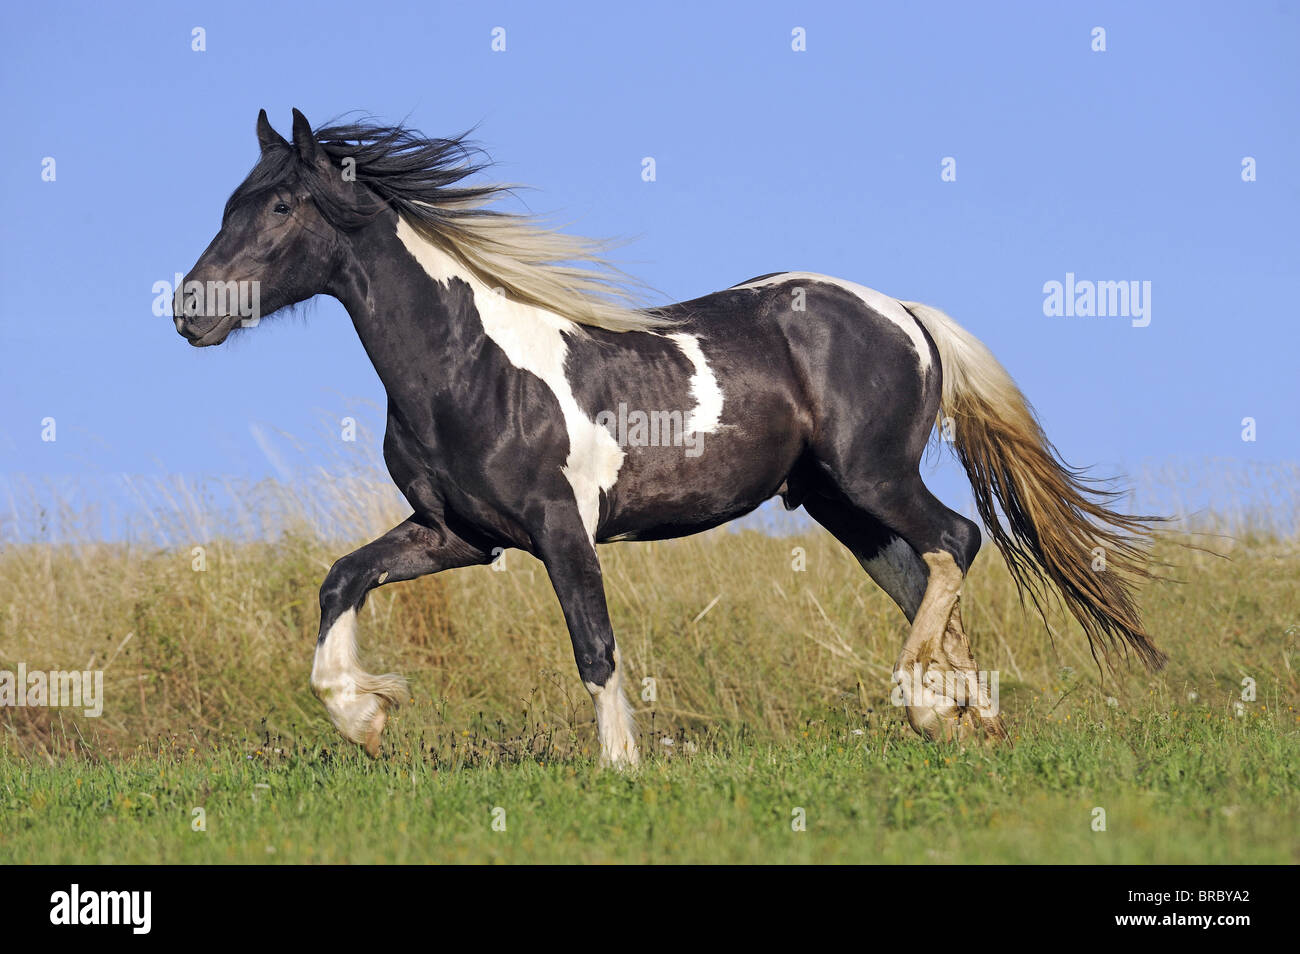 Gypsy Vanner Horse (Equus ferus caballus), young stallion trotting on a meadow. - Stock Image